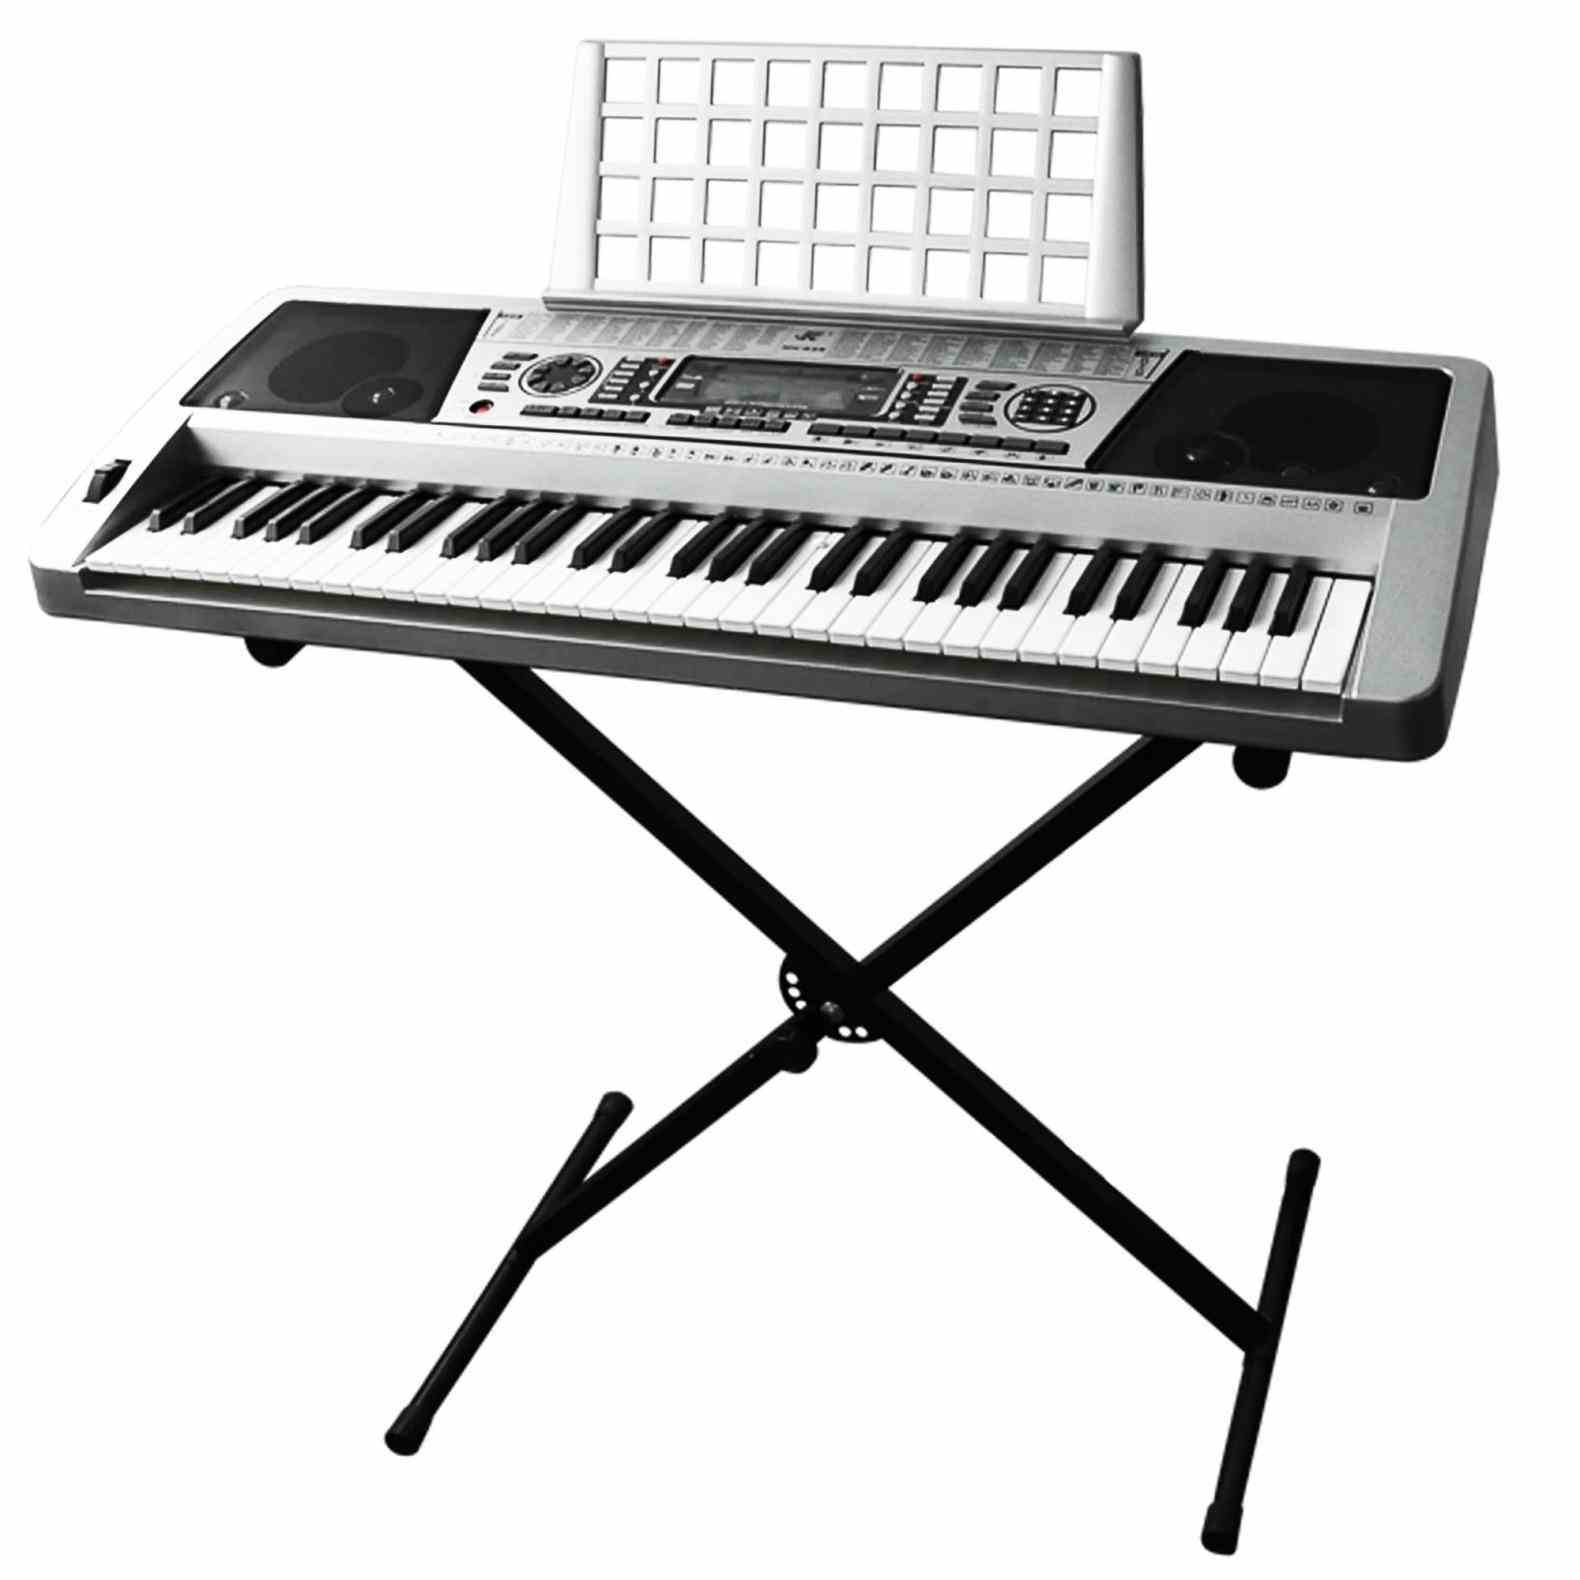 Musical instrument keyboard clipart black and white banner royalty free stock Piano Clipart Black And White | Free download best Piano Clipart ... banner royalty free stock